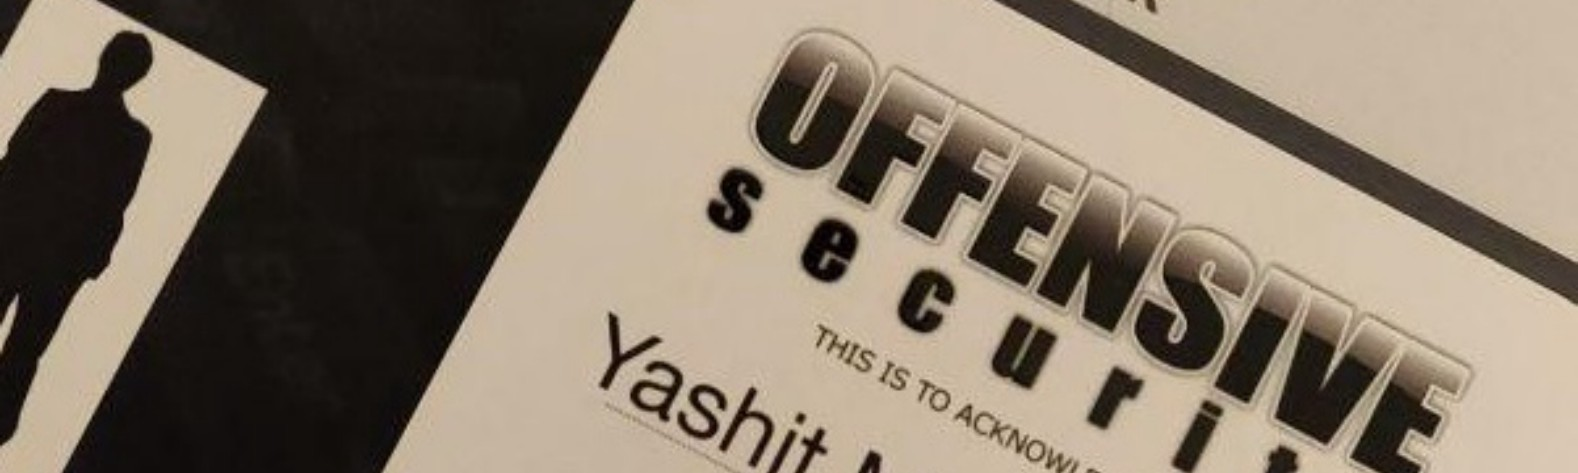 My experience with the OSCP Certification - Yashit